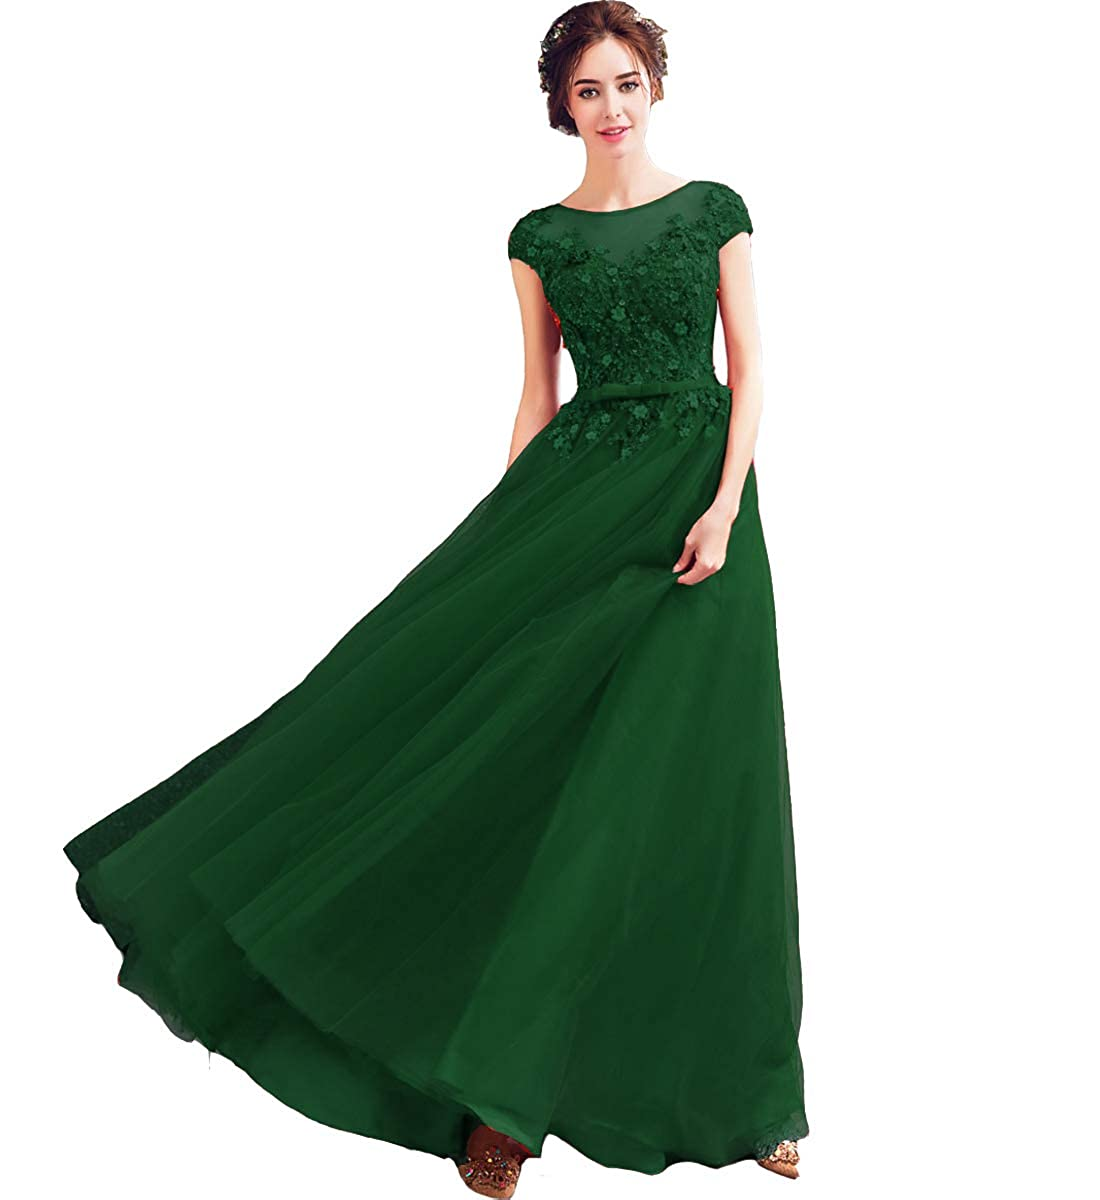 Emerald Green Kivary Tulle Bateau Beaded Lace Appliques Floral Long Formal Evening Prom Dress